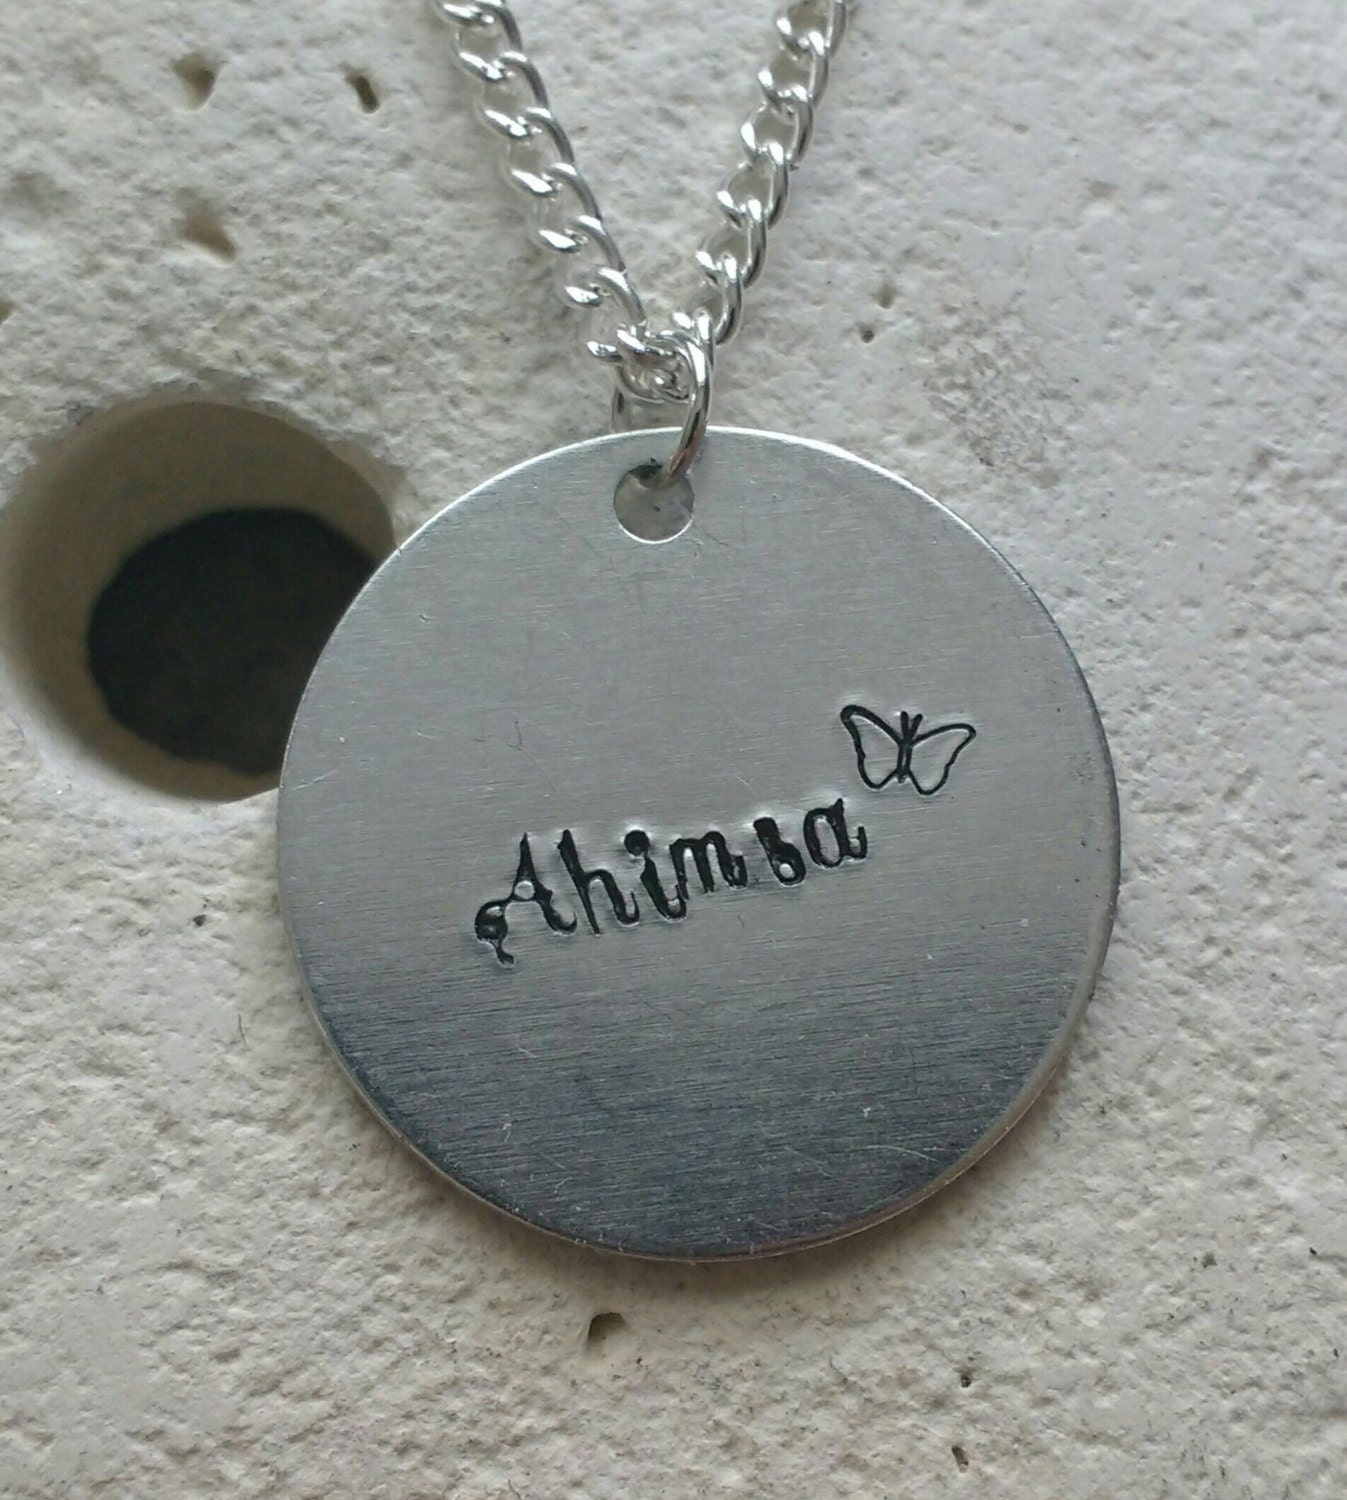 Ahimsa butterfly necklace - vegan veggie jewelry - animal rights jewellery - handstamped 25mm pendant on 18